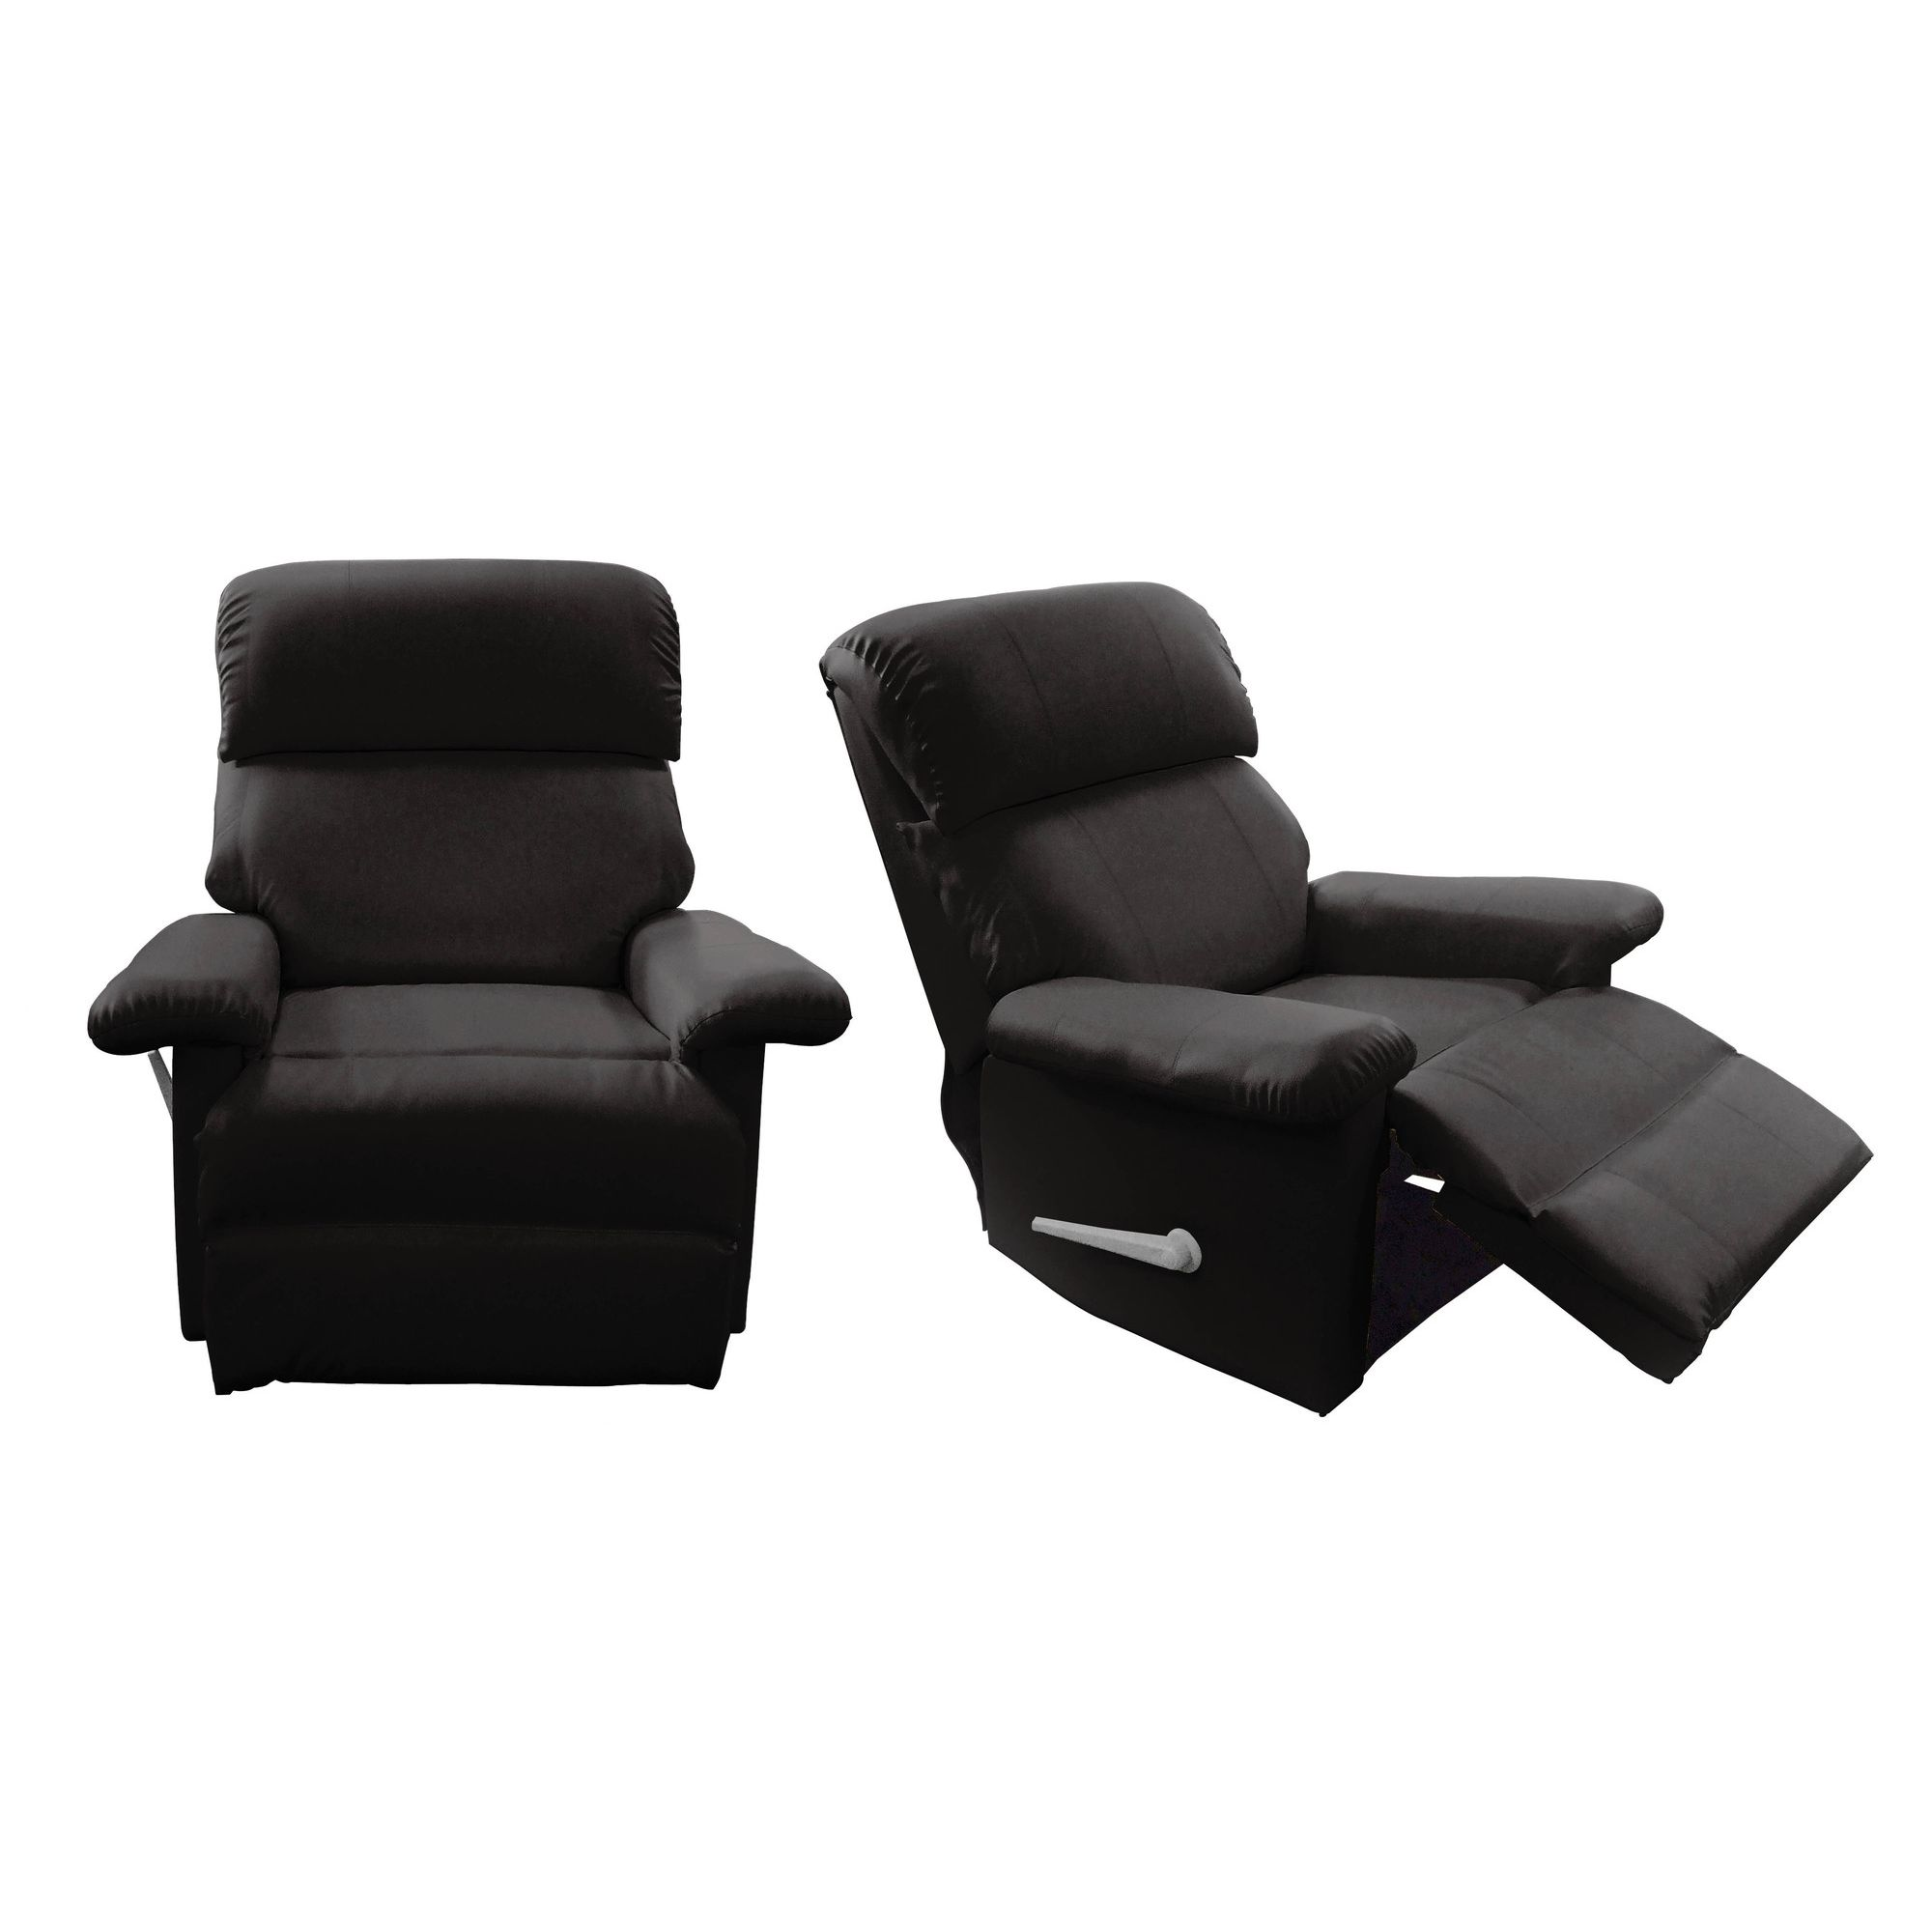 Premier Housewares Leather Effect Reclining Chair at Tesco Direct